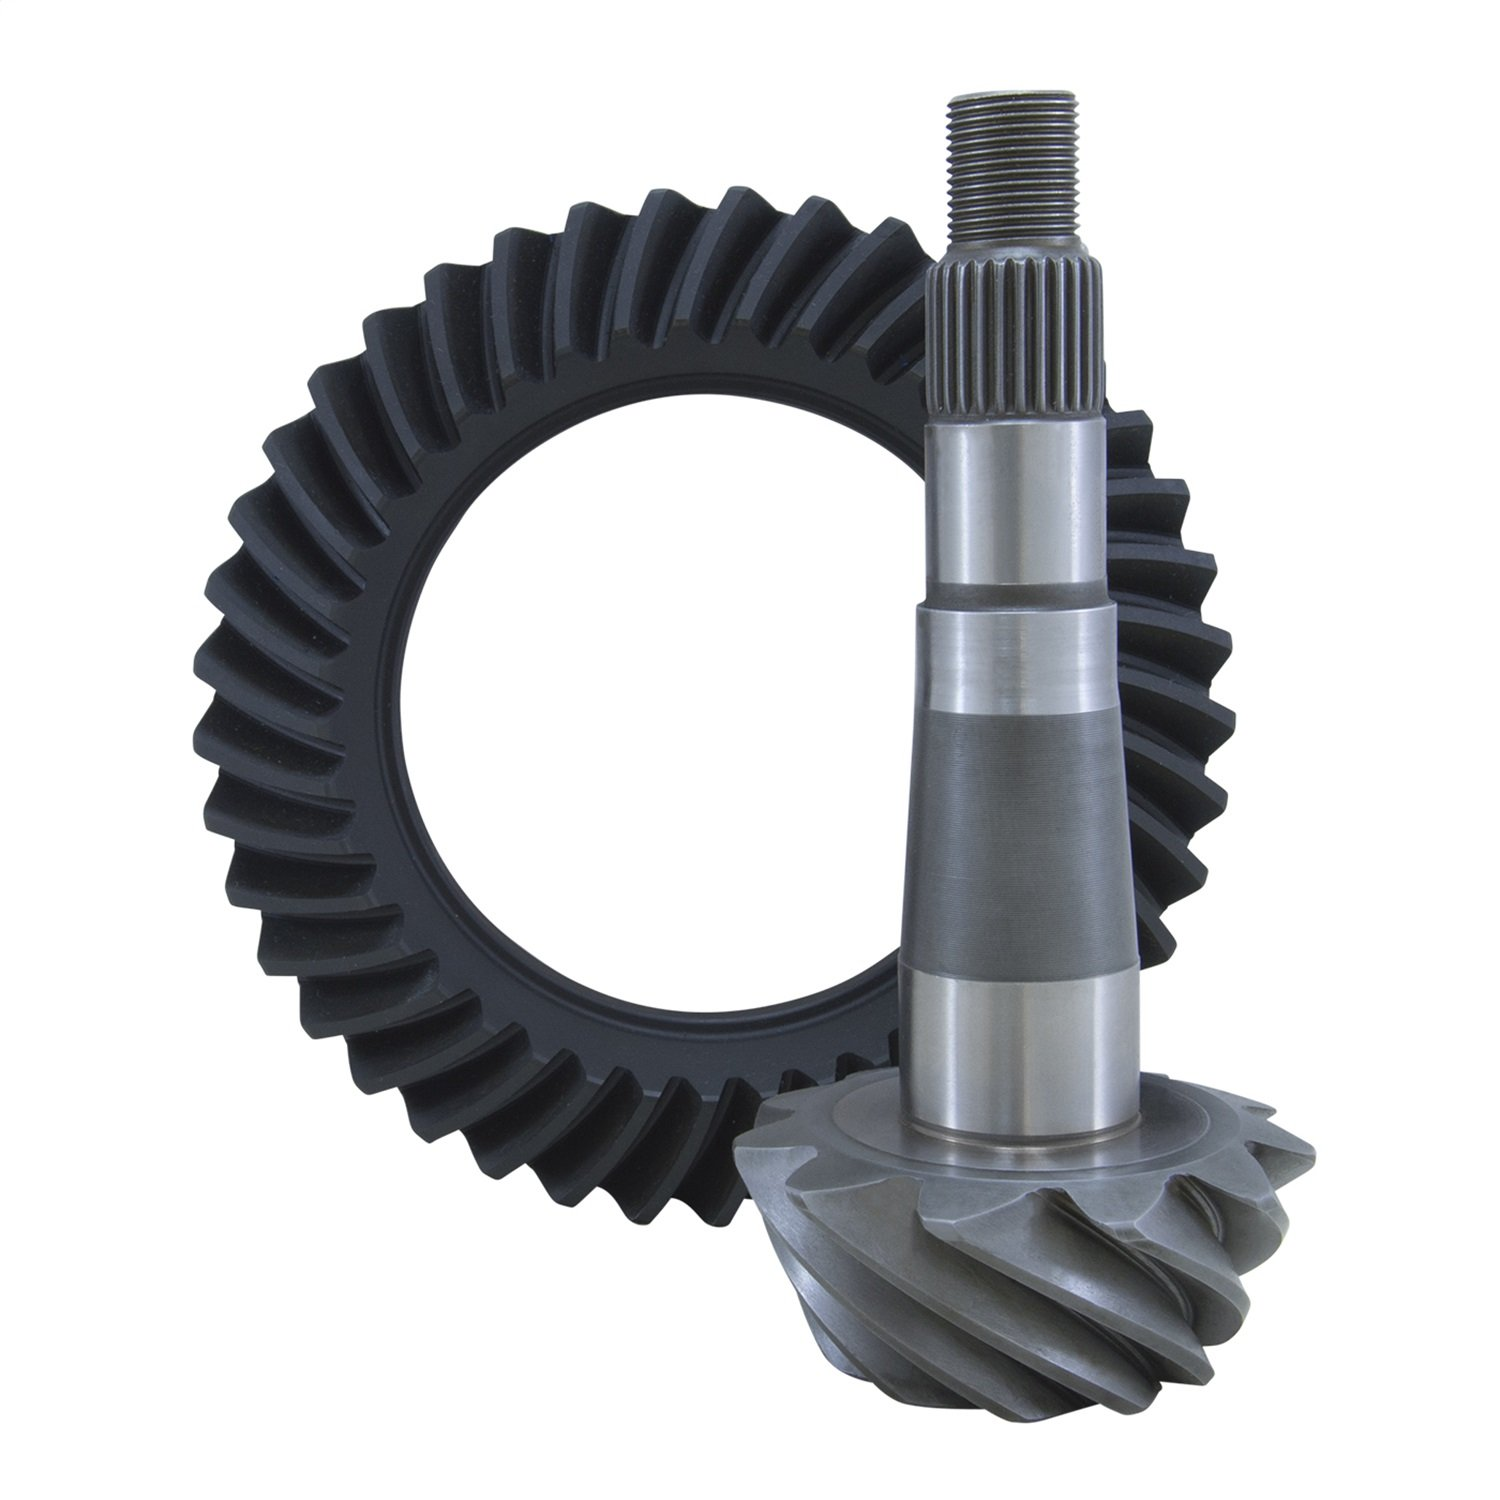 USA Standard Gear (ZG C8.25-355) Ring & Pinion Gear Set for Chrysler 8.25 Differential